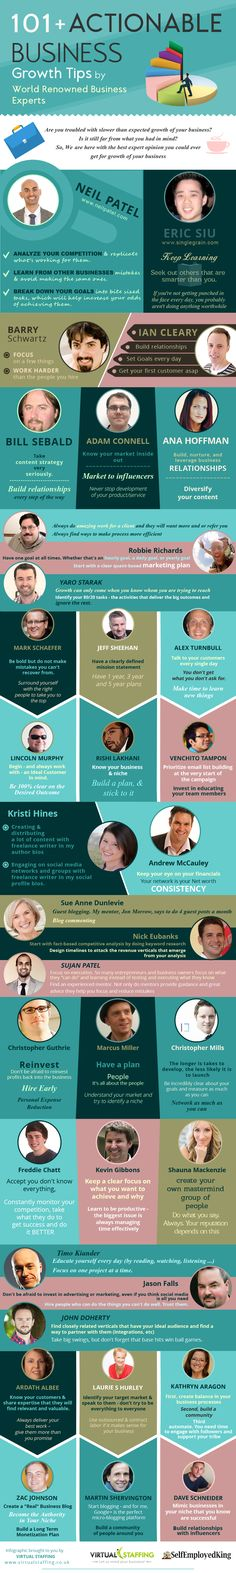 101+ Actionable Business Growth Tips By World Renowned Business Experts